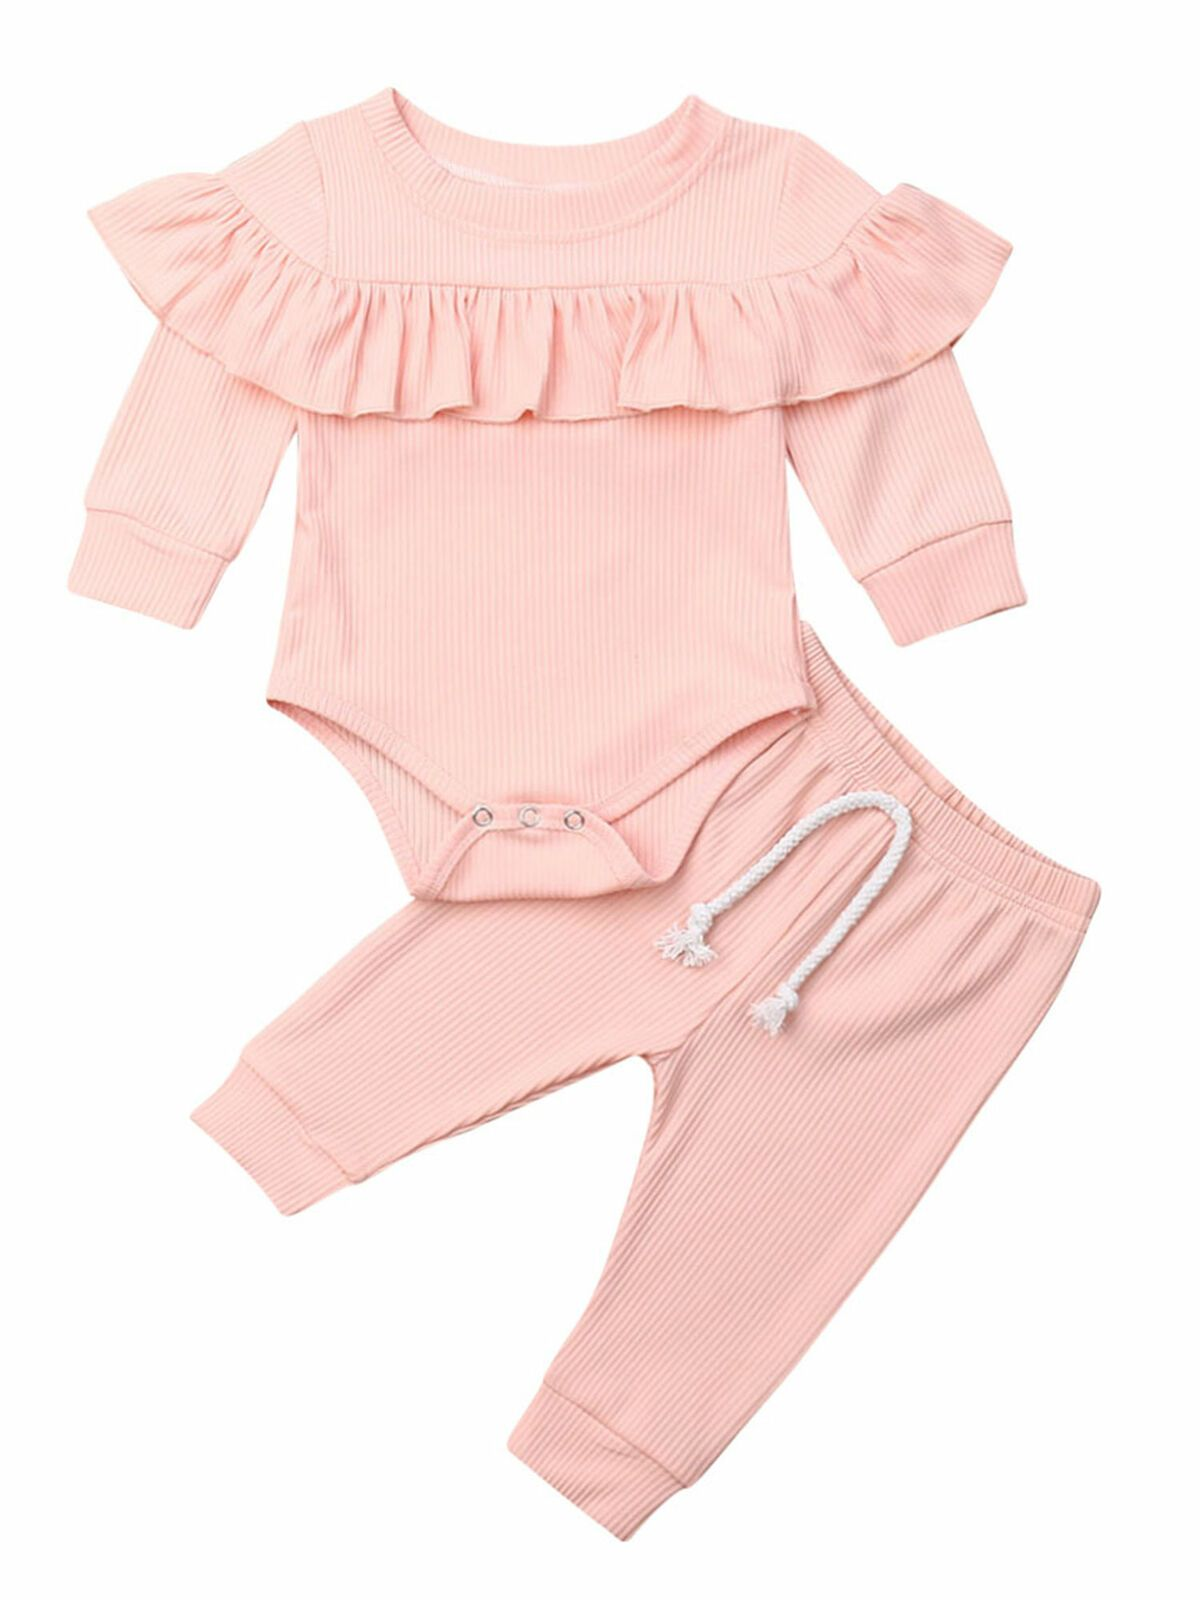 Calsunbaby Infant Baby Girls Kid Ruffle Romper Tops Pant Autumn Winter Clothes Set 0 24m Walmart Com Baby Girl Clothes Winter Newborn Outfits Winter Baby Clothes